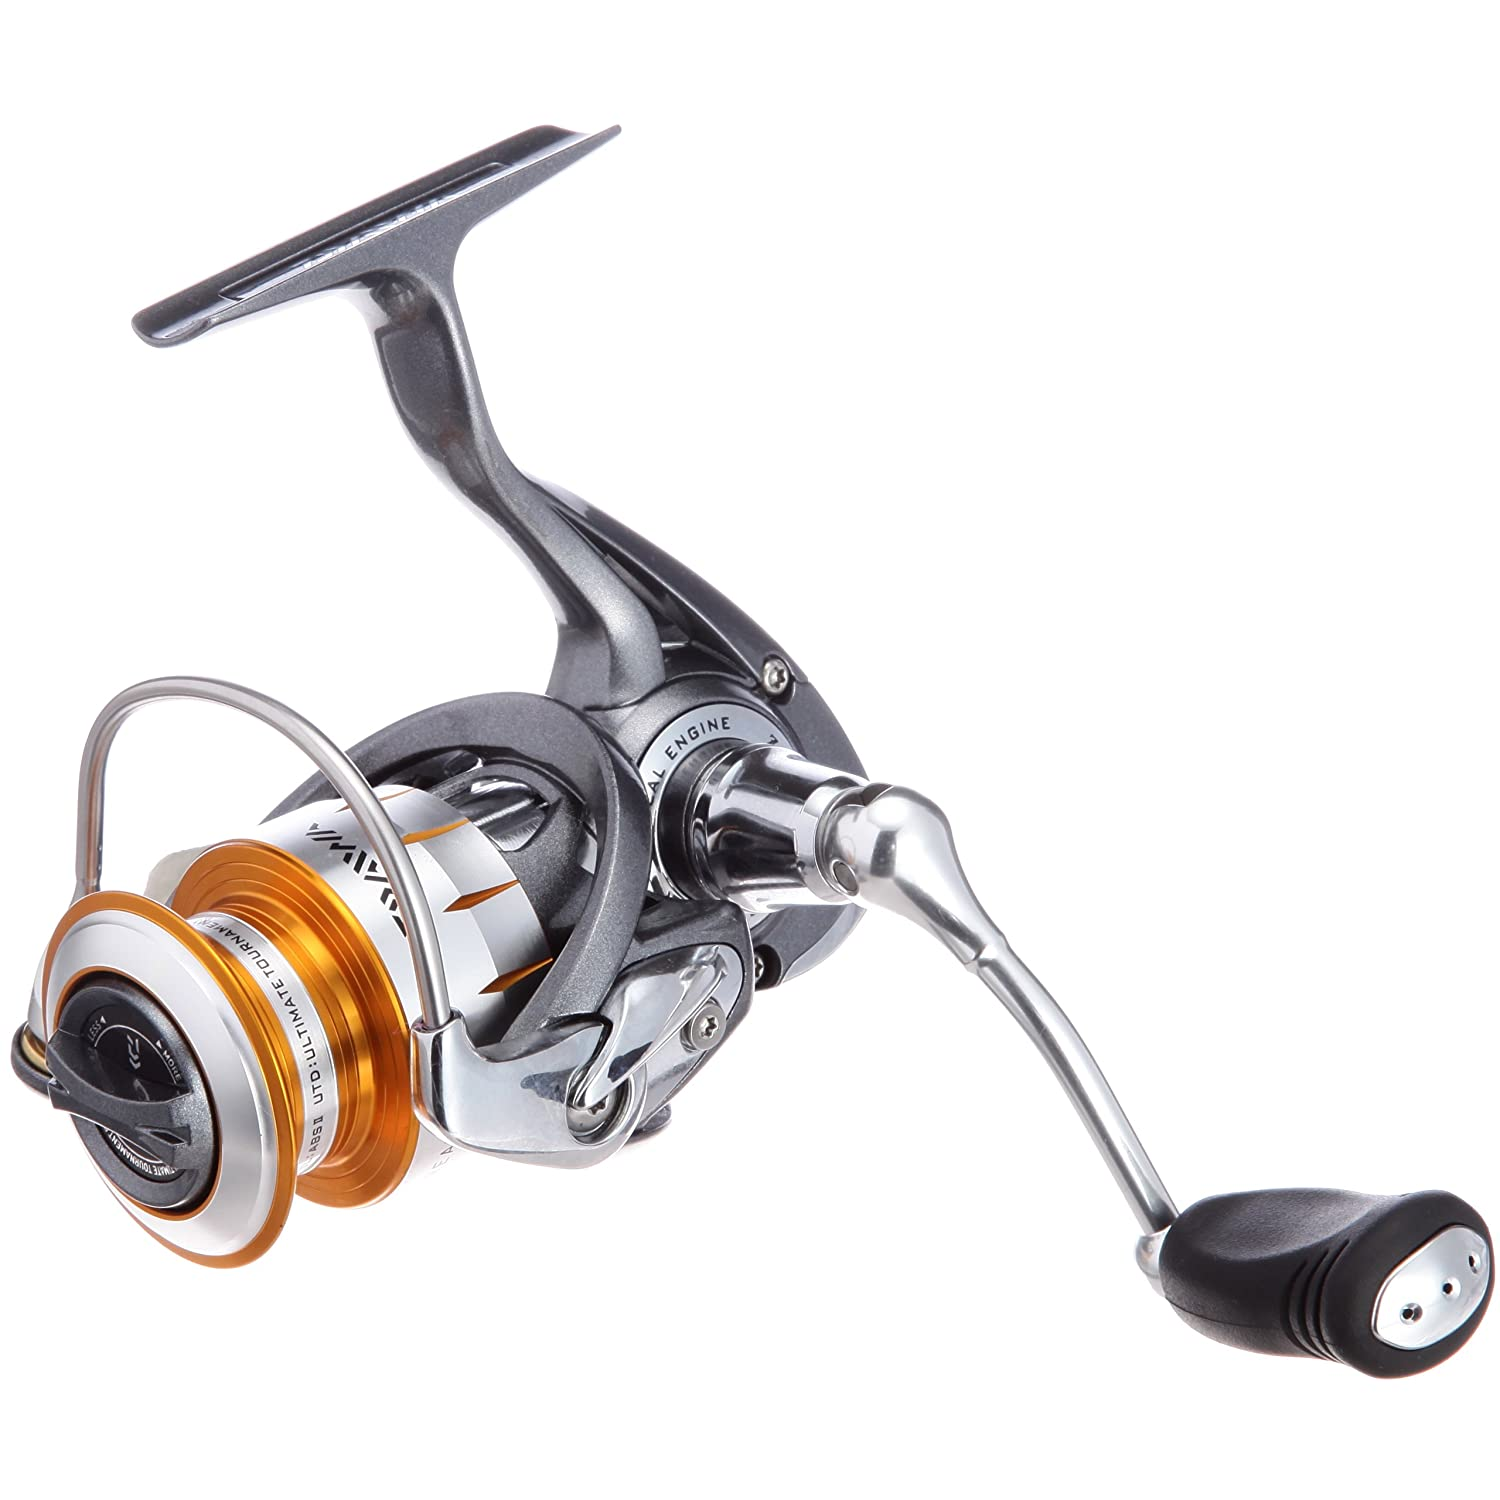 New daiwa spinning reel 39 11 freams 2000 from japan ebay for Japanese fishing reels